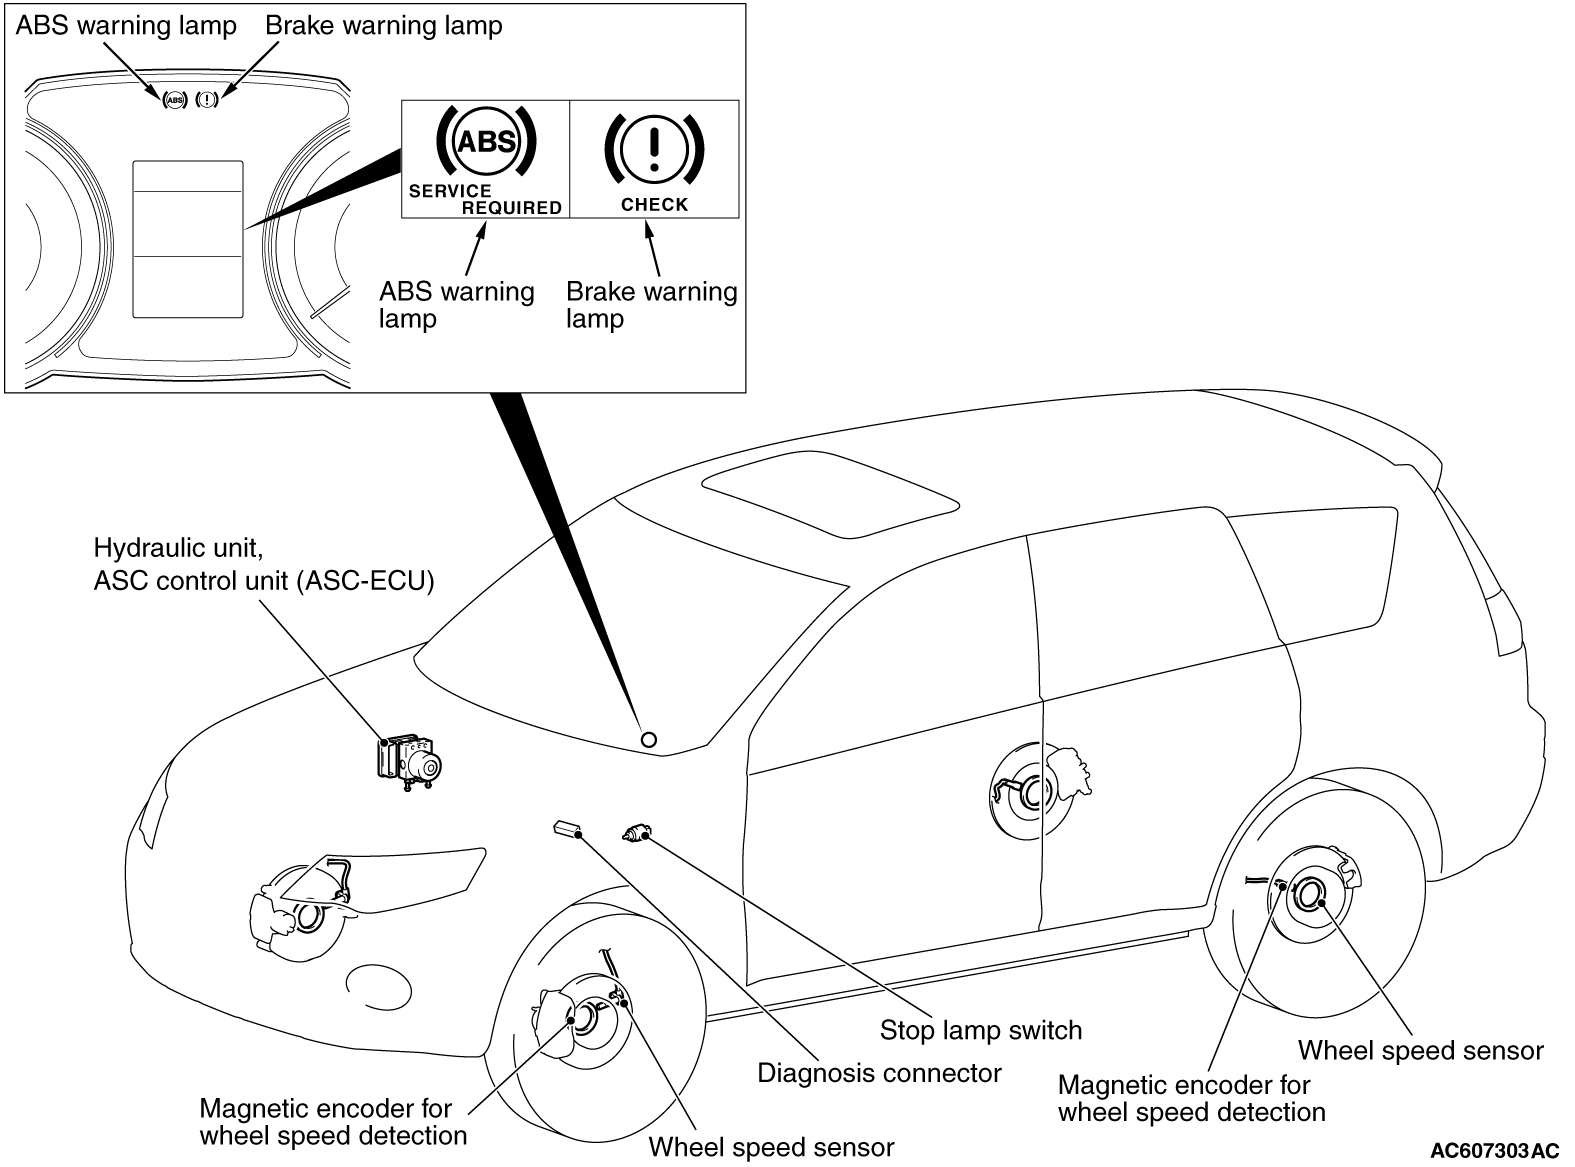 Electronic Brake Force Distribution (EBD) system warning